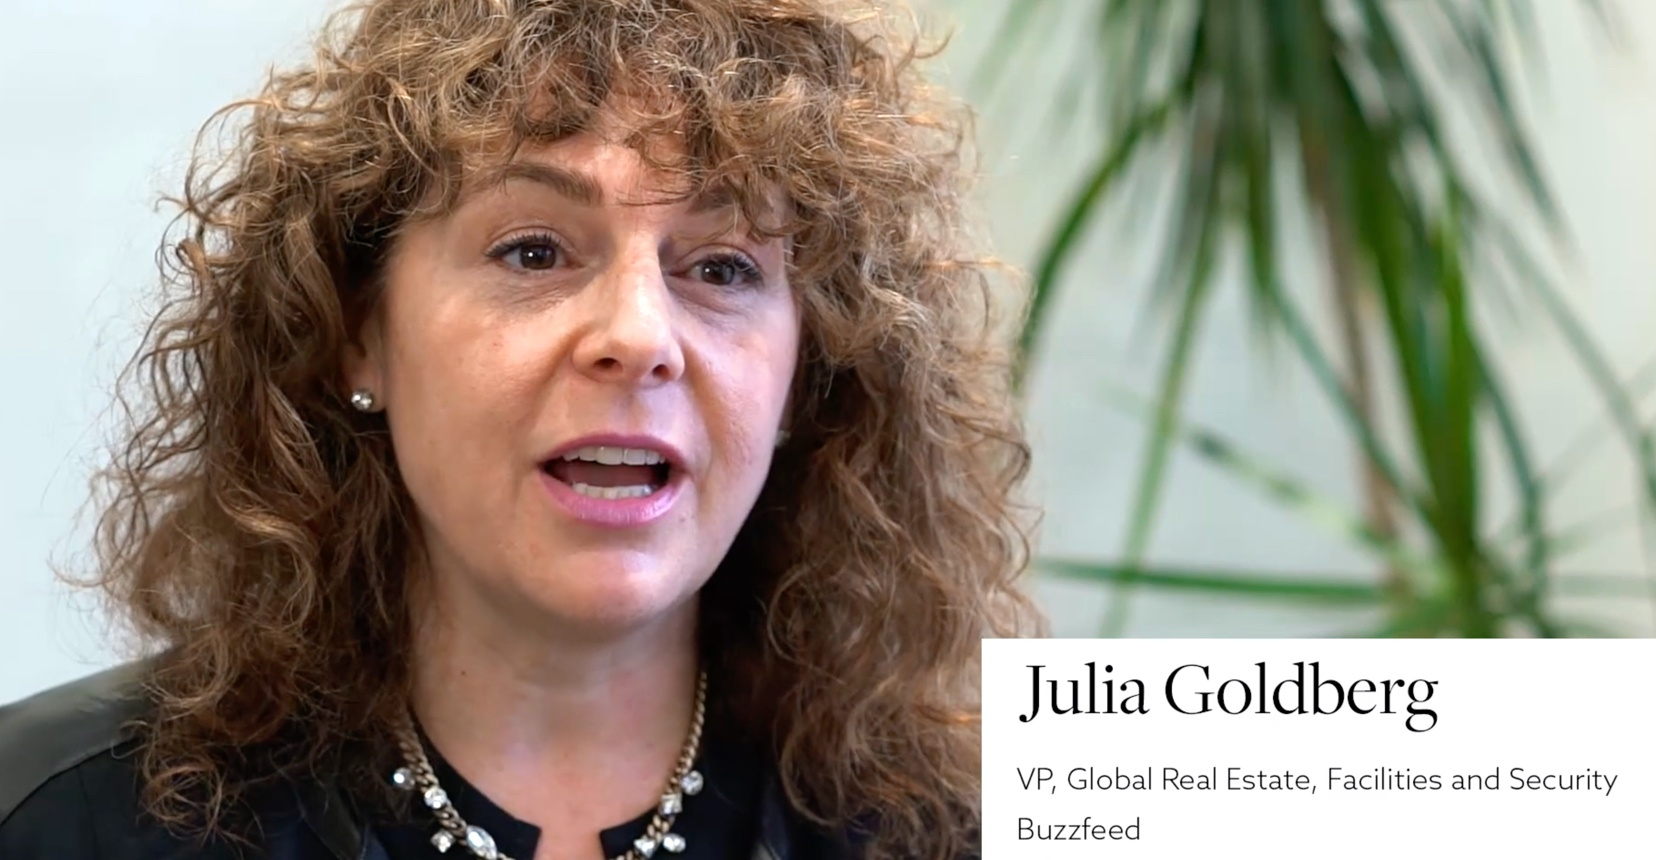 Video interview with Julia Goldberg, VP of Global Real Estate, Facilities and Securities at Buzzfeed